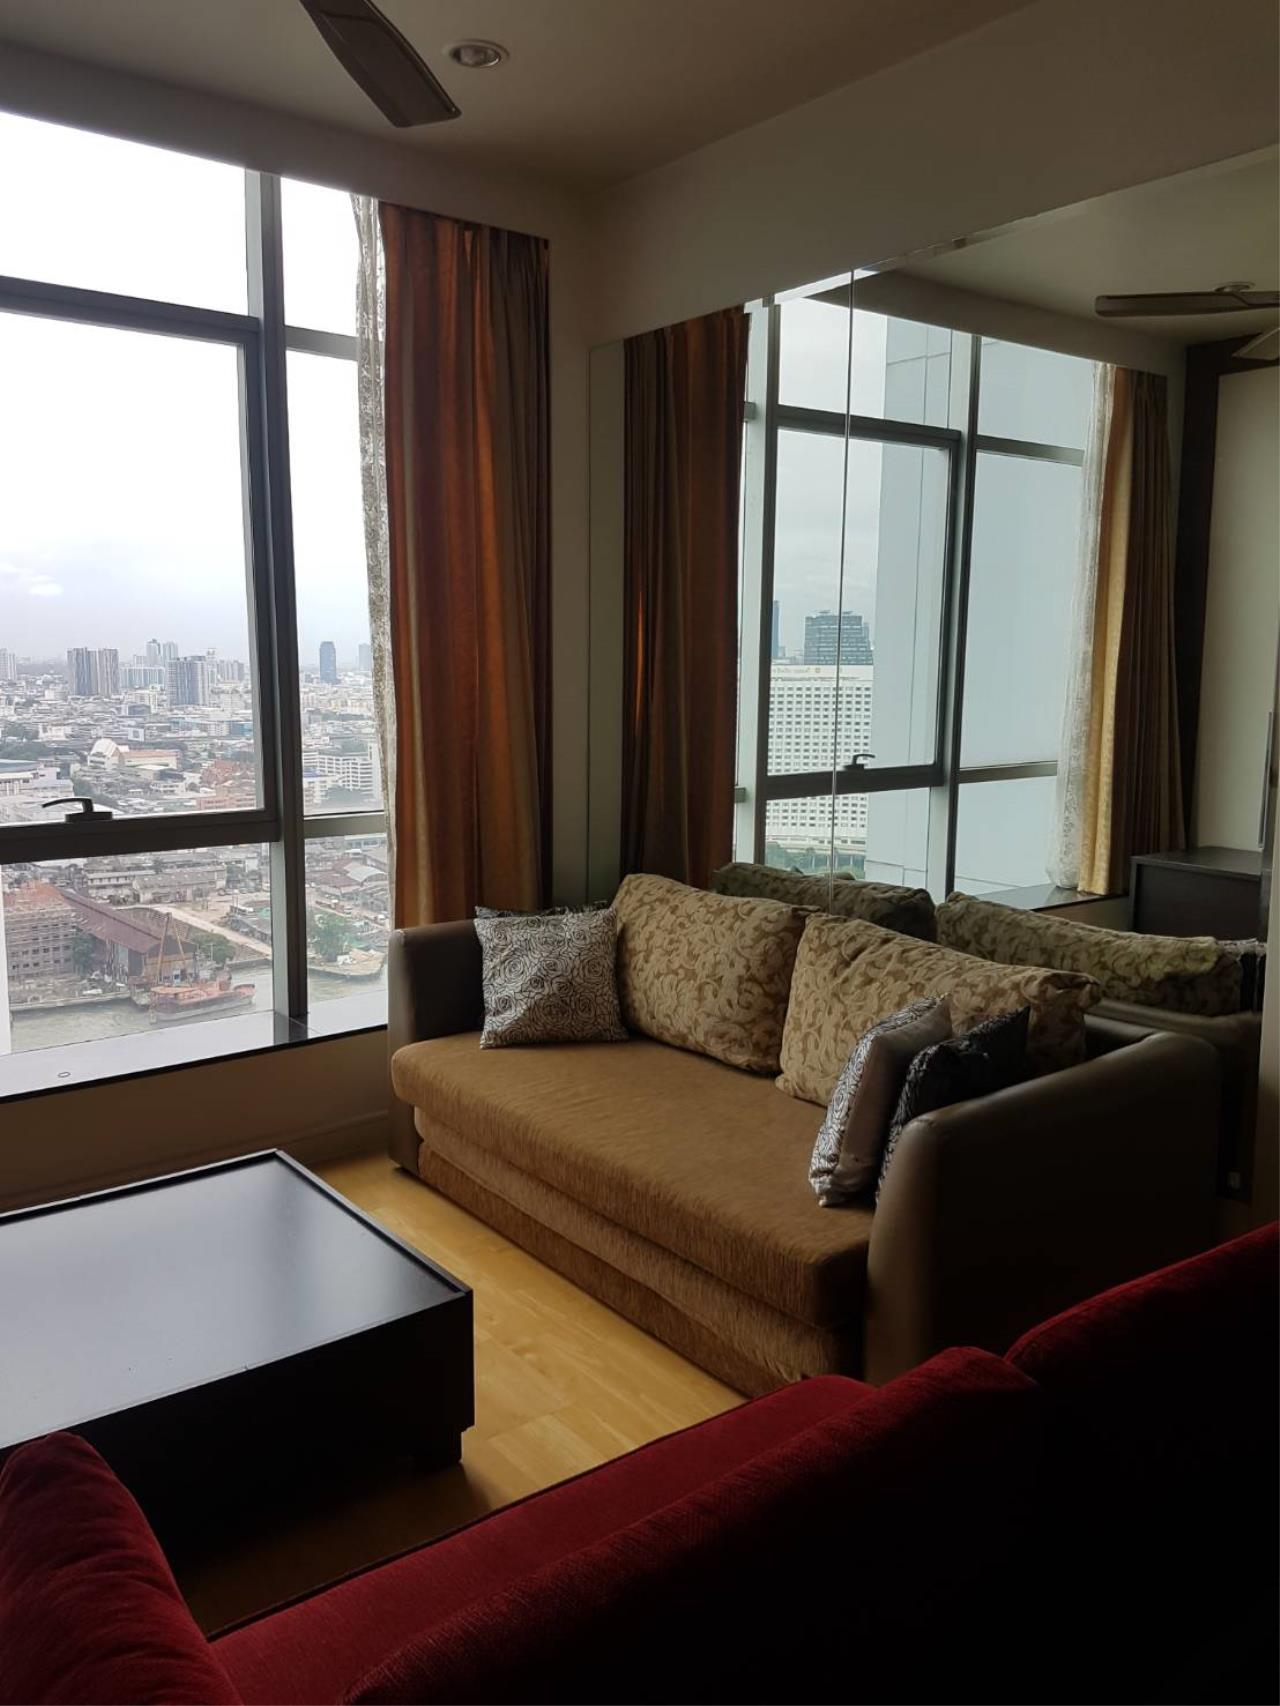 Quality Life Property Agency's For Rent Condo Baan Chao Praya Sathorn 1 Bedroom 1 Bath High Floor Top View 1